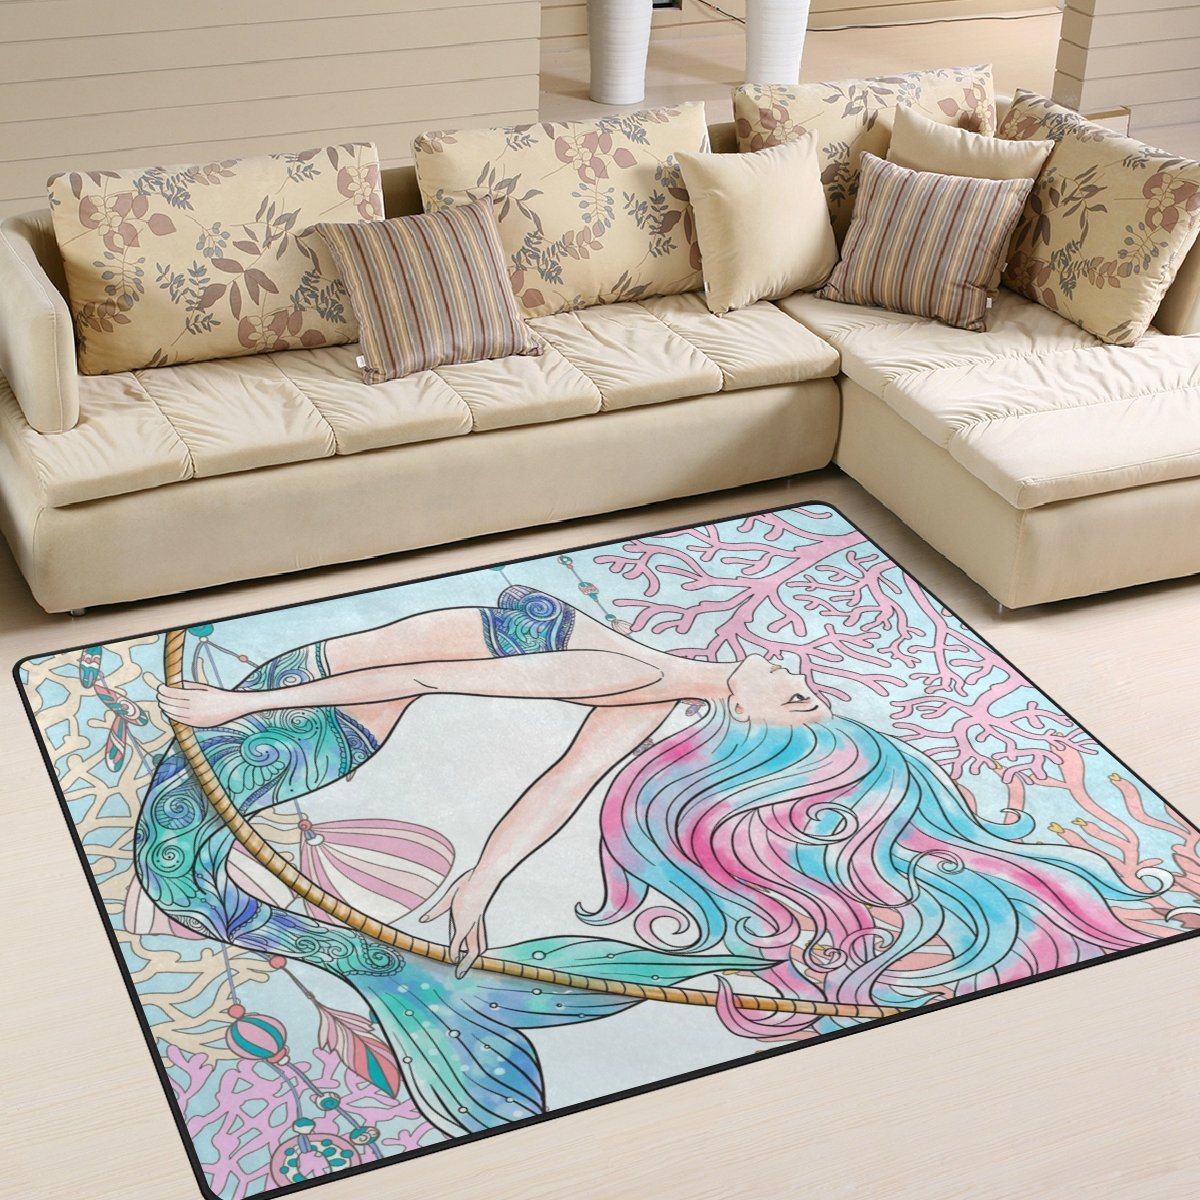 ALAZA Beautiful Mermaid with Gold Fish in Underwater World Kids Area Rug,Cute Mermaid Non-Slip Floor Mat Soft Resting Area Doormats for Living Dining Bedroom 5 x 7